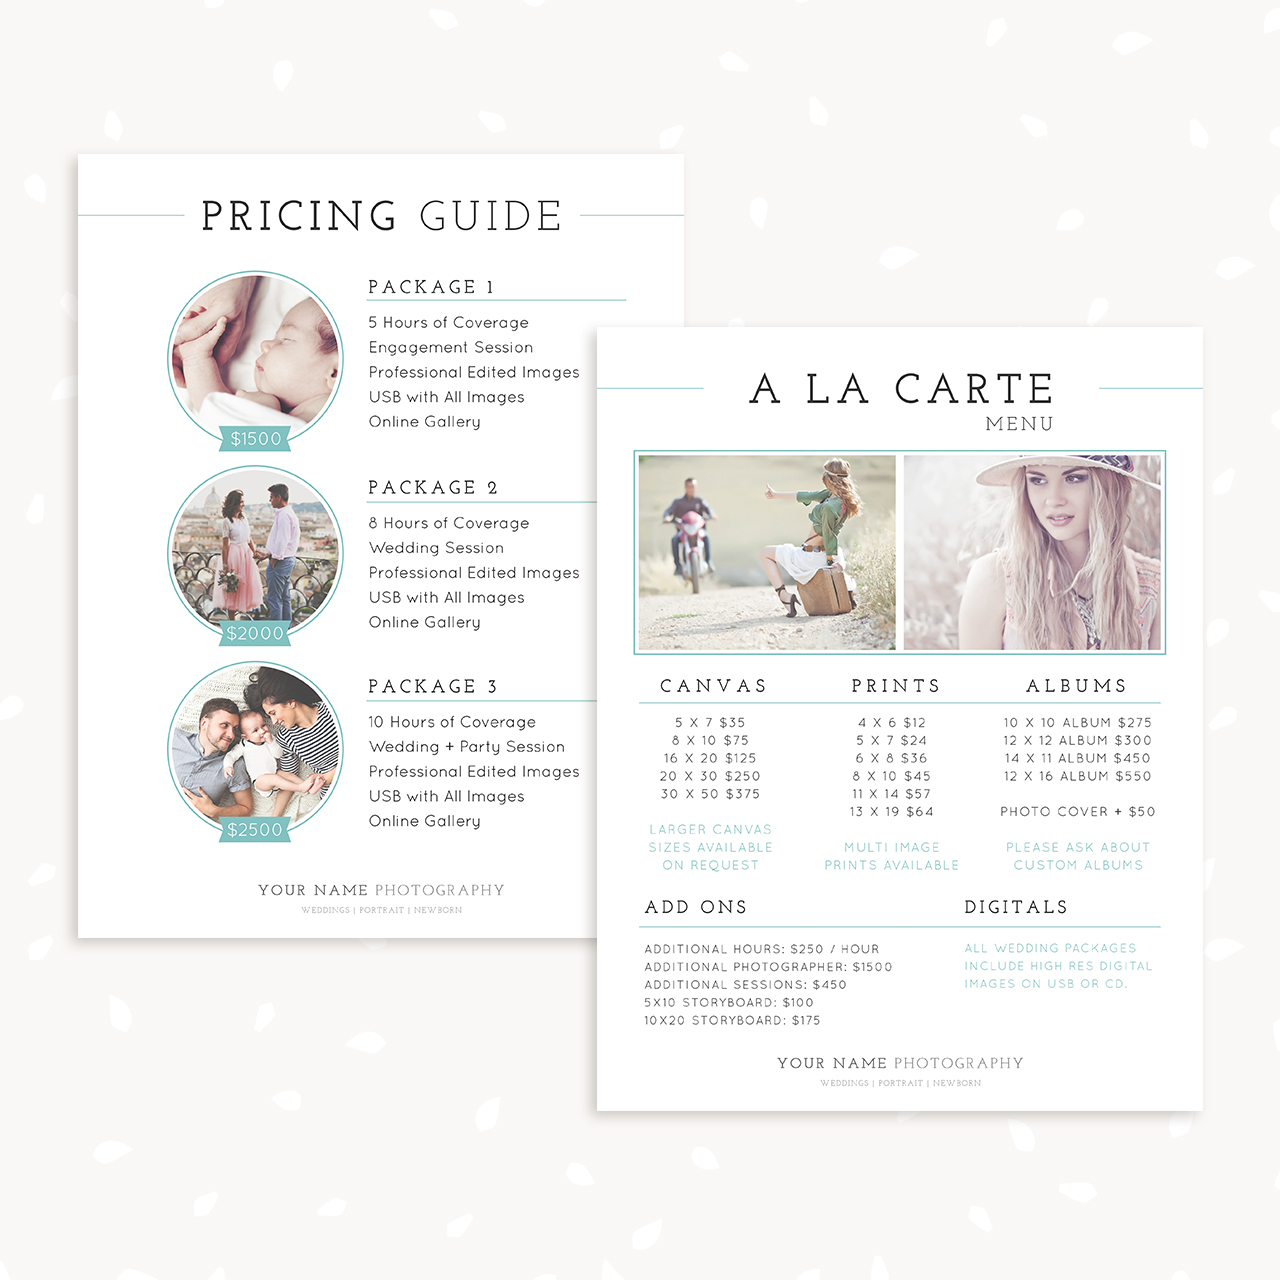 Classical Pricing Guide and A la carte menu template